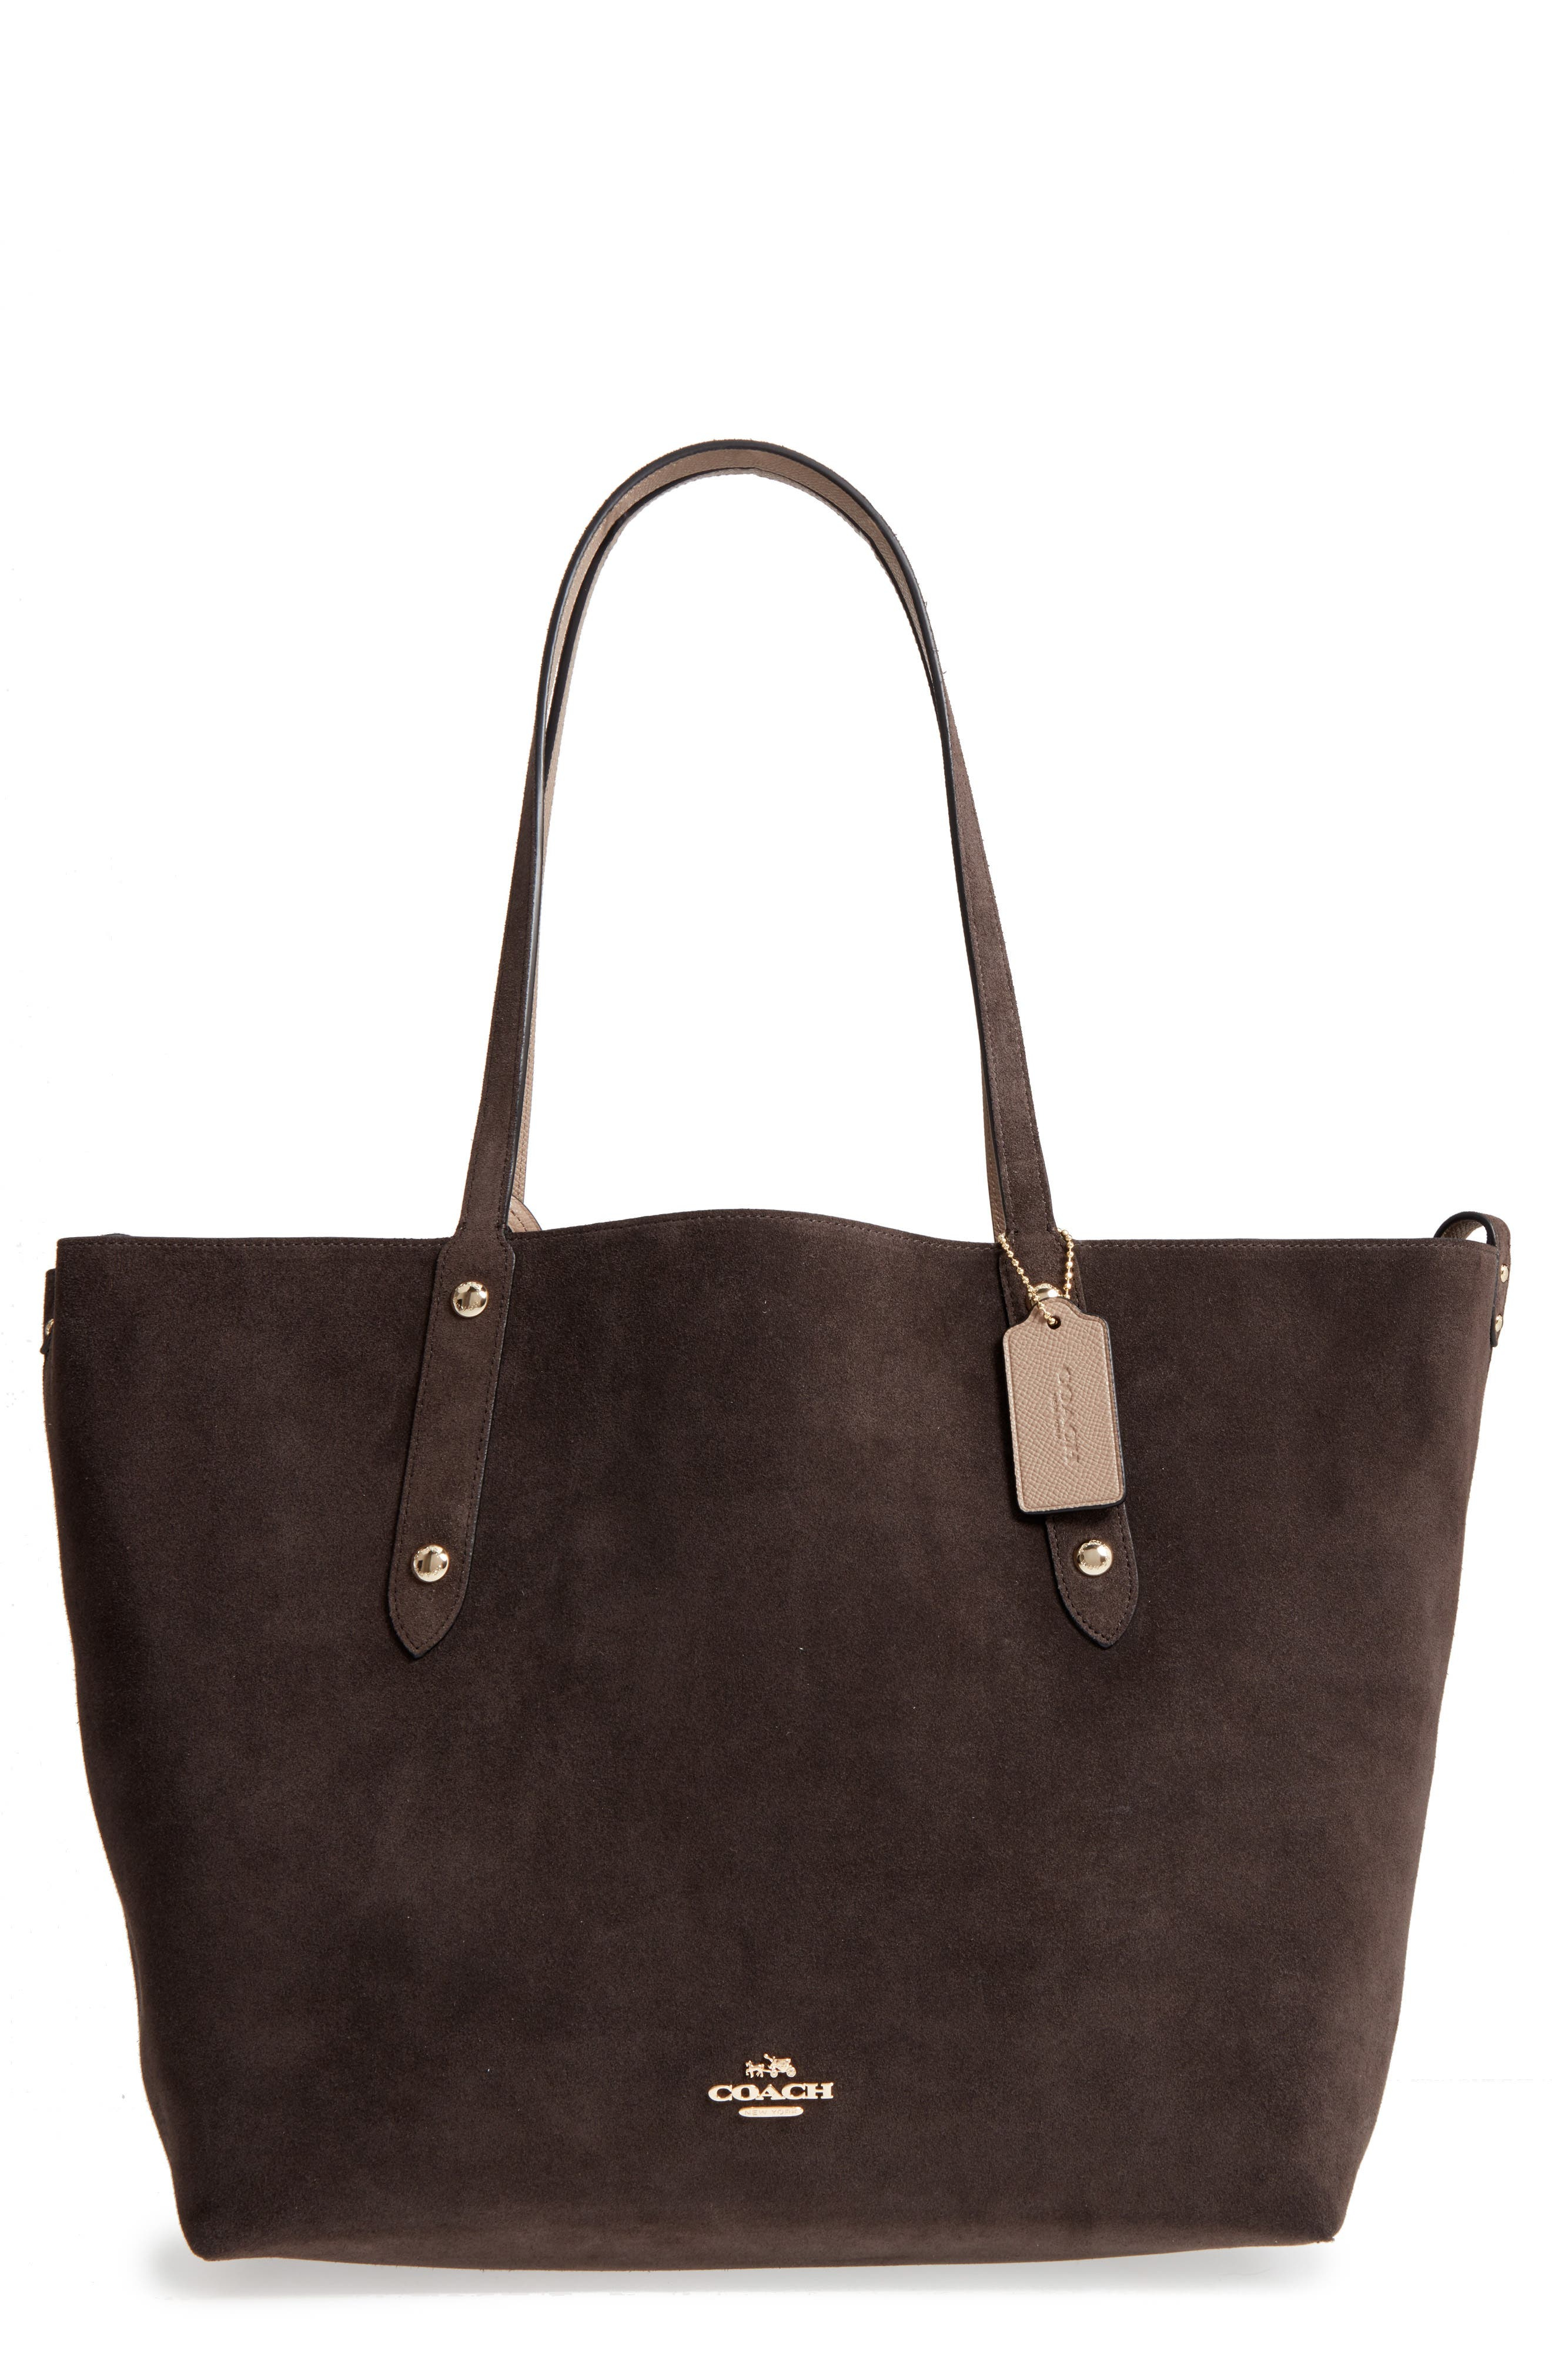 COACH Large Market Reversible Leather Tote